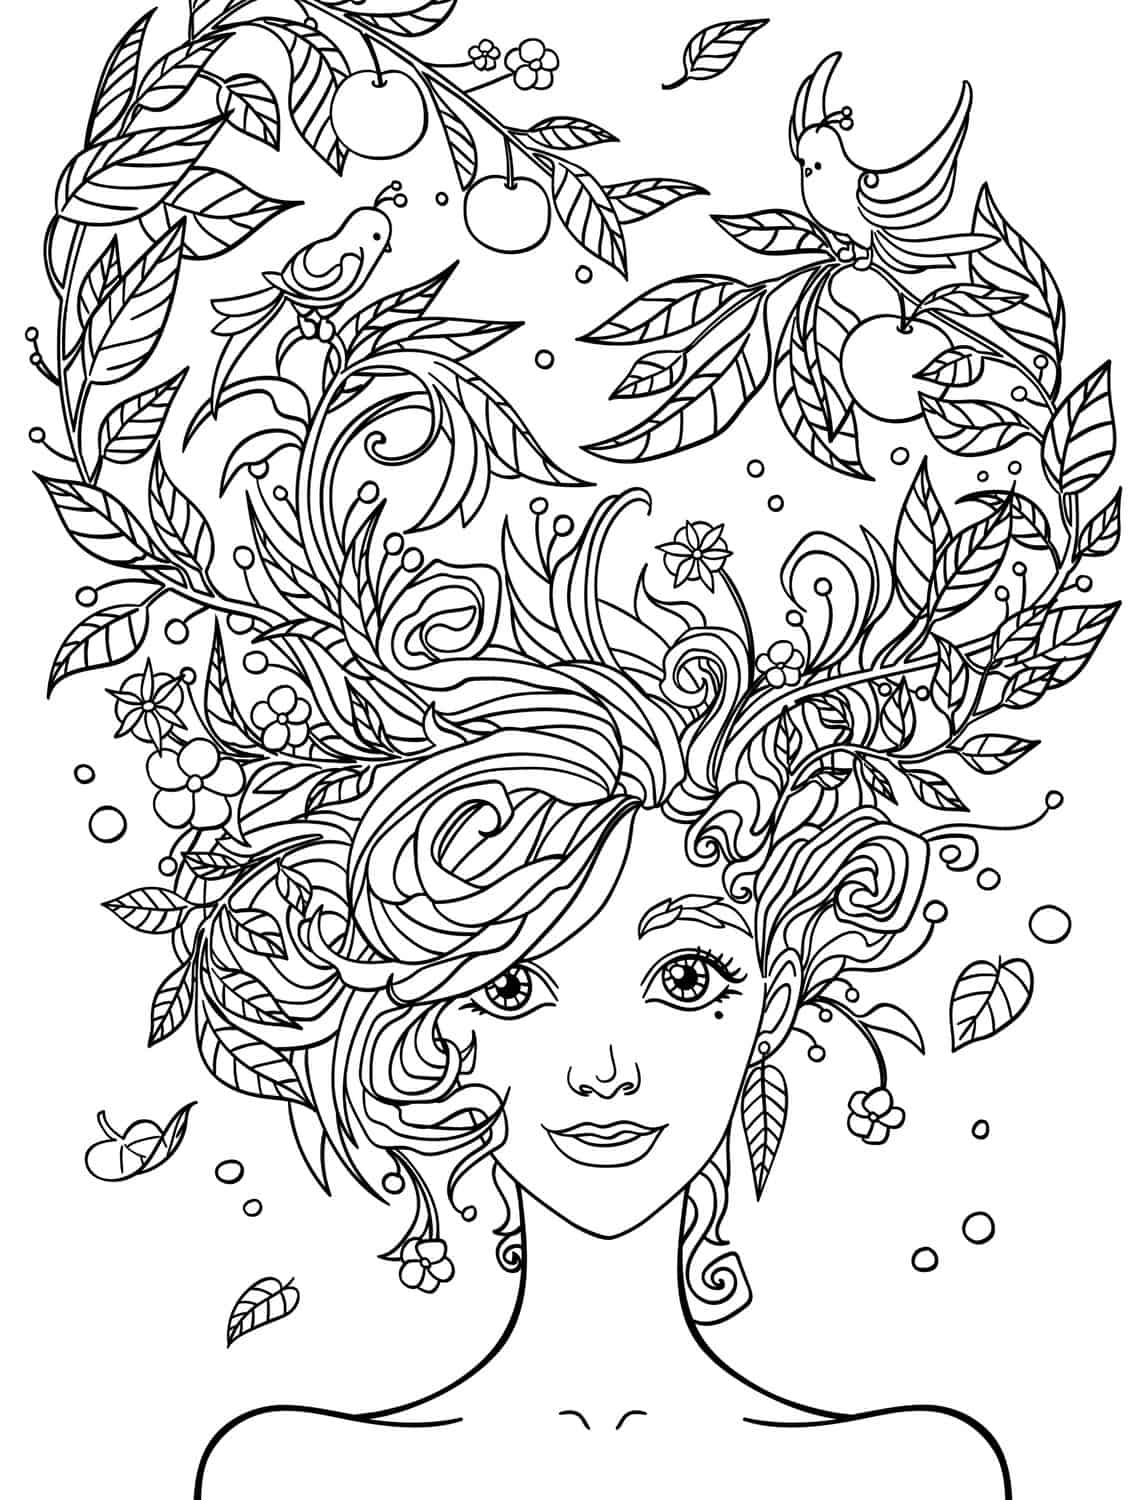 10 crazy hair adult coloring pages page 5 of 12 nerdy for Adult color page